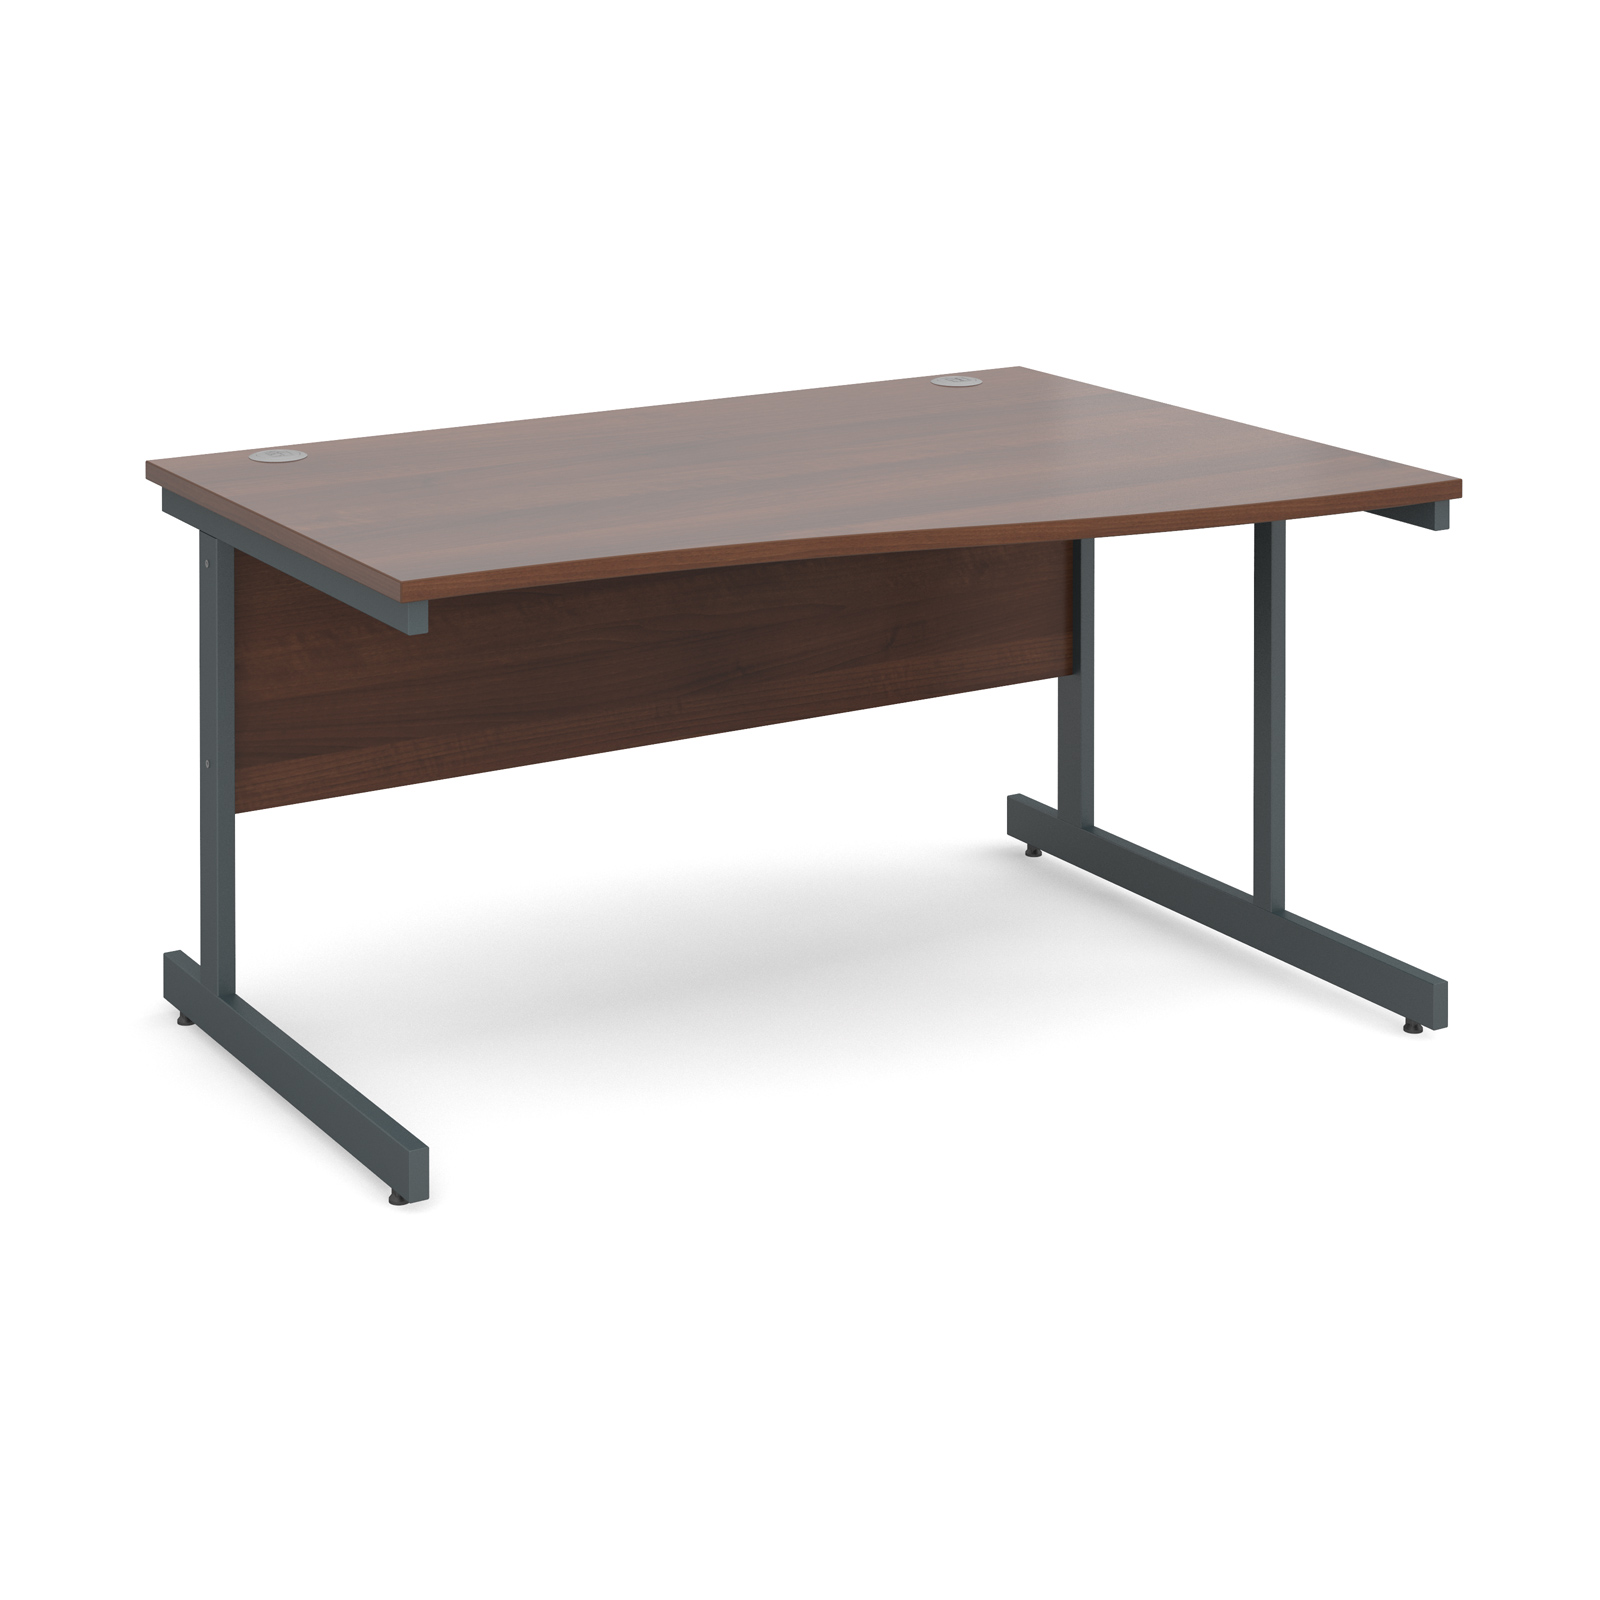 Contract 25 right hand wave desk 1400mm - graphite cantilever frame, walnut top